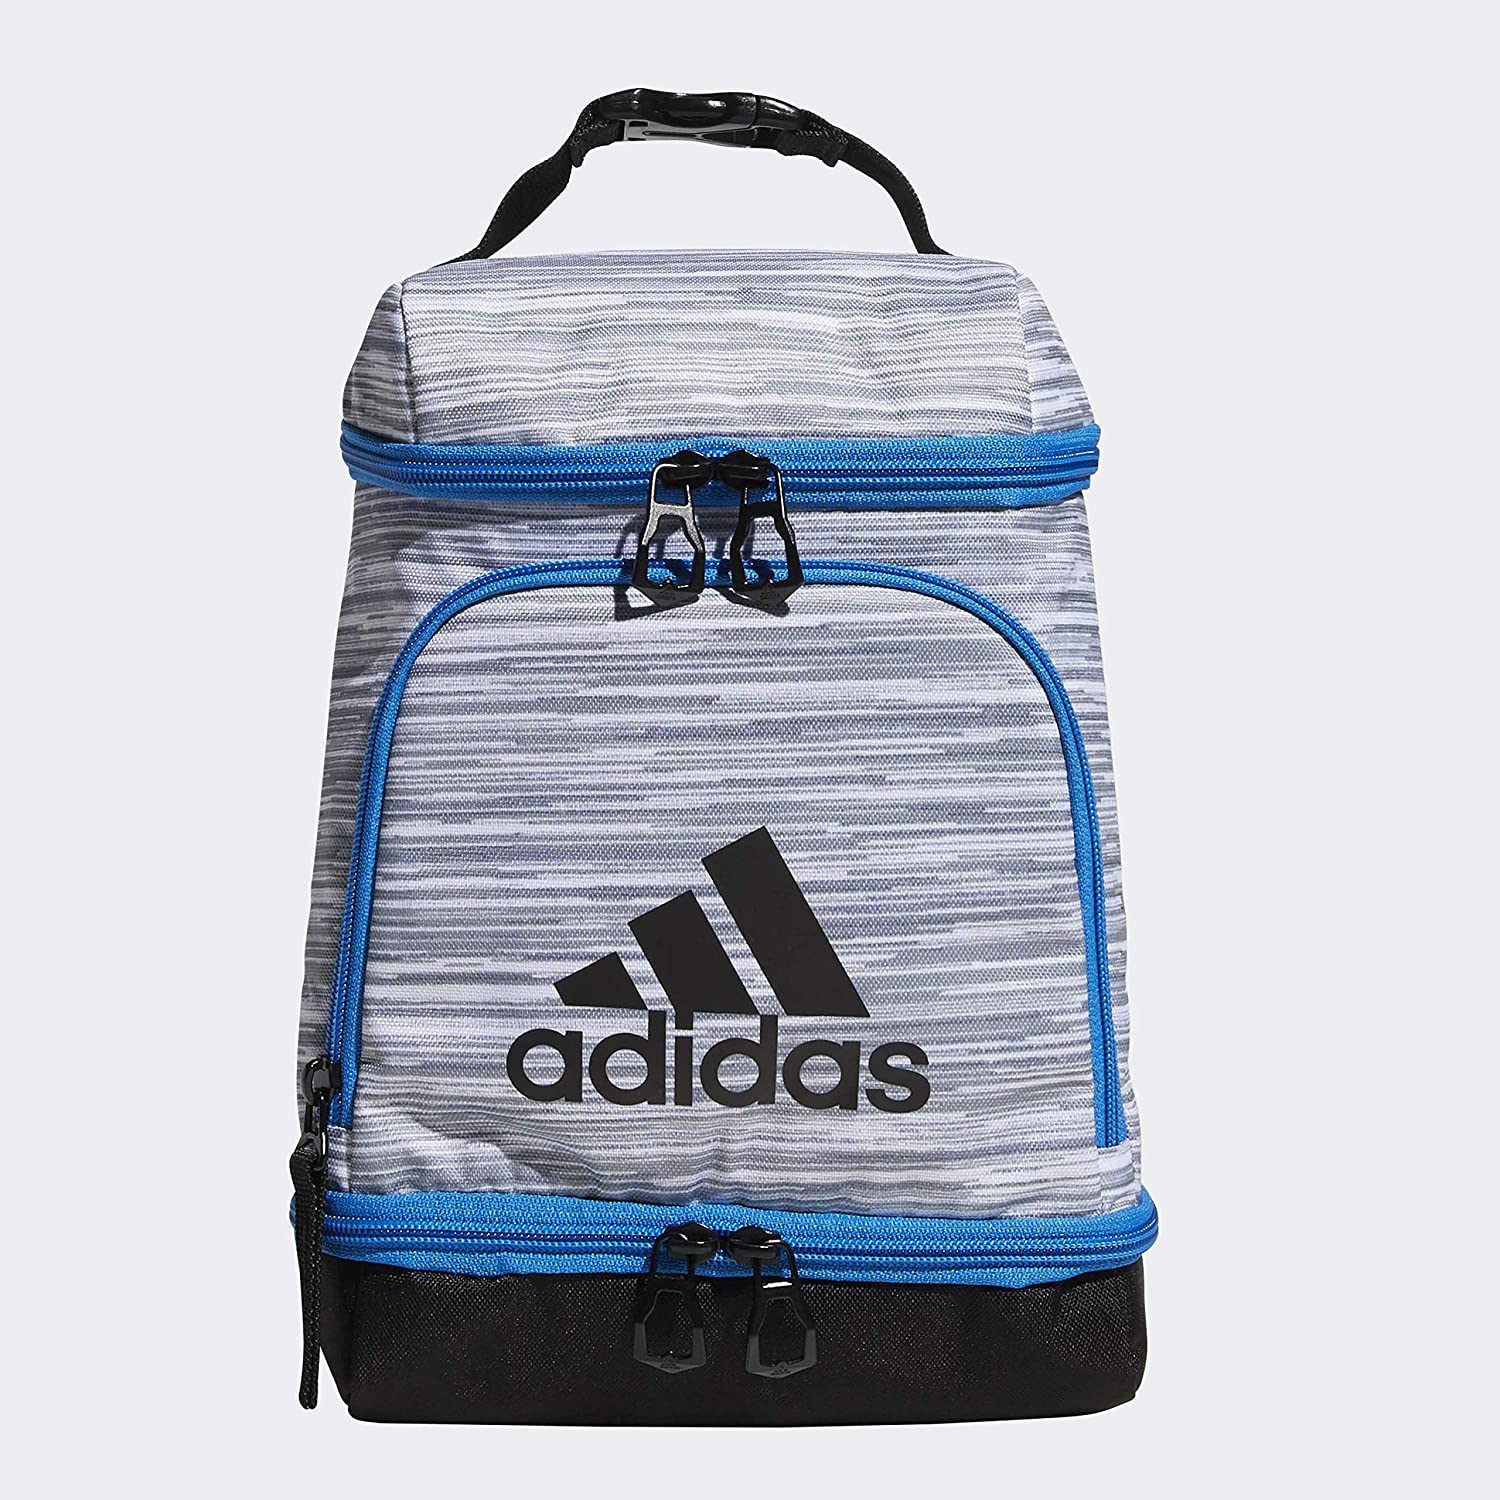 adidas Unisex Excel Insulated Lunch Bag, White ... - Amazon.com